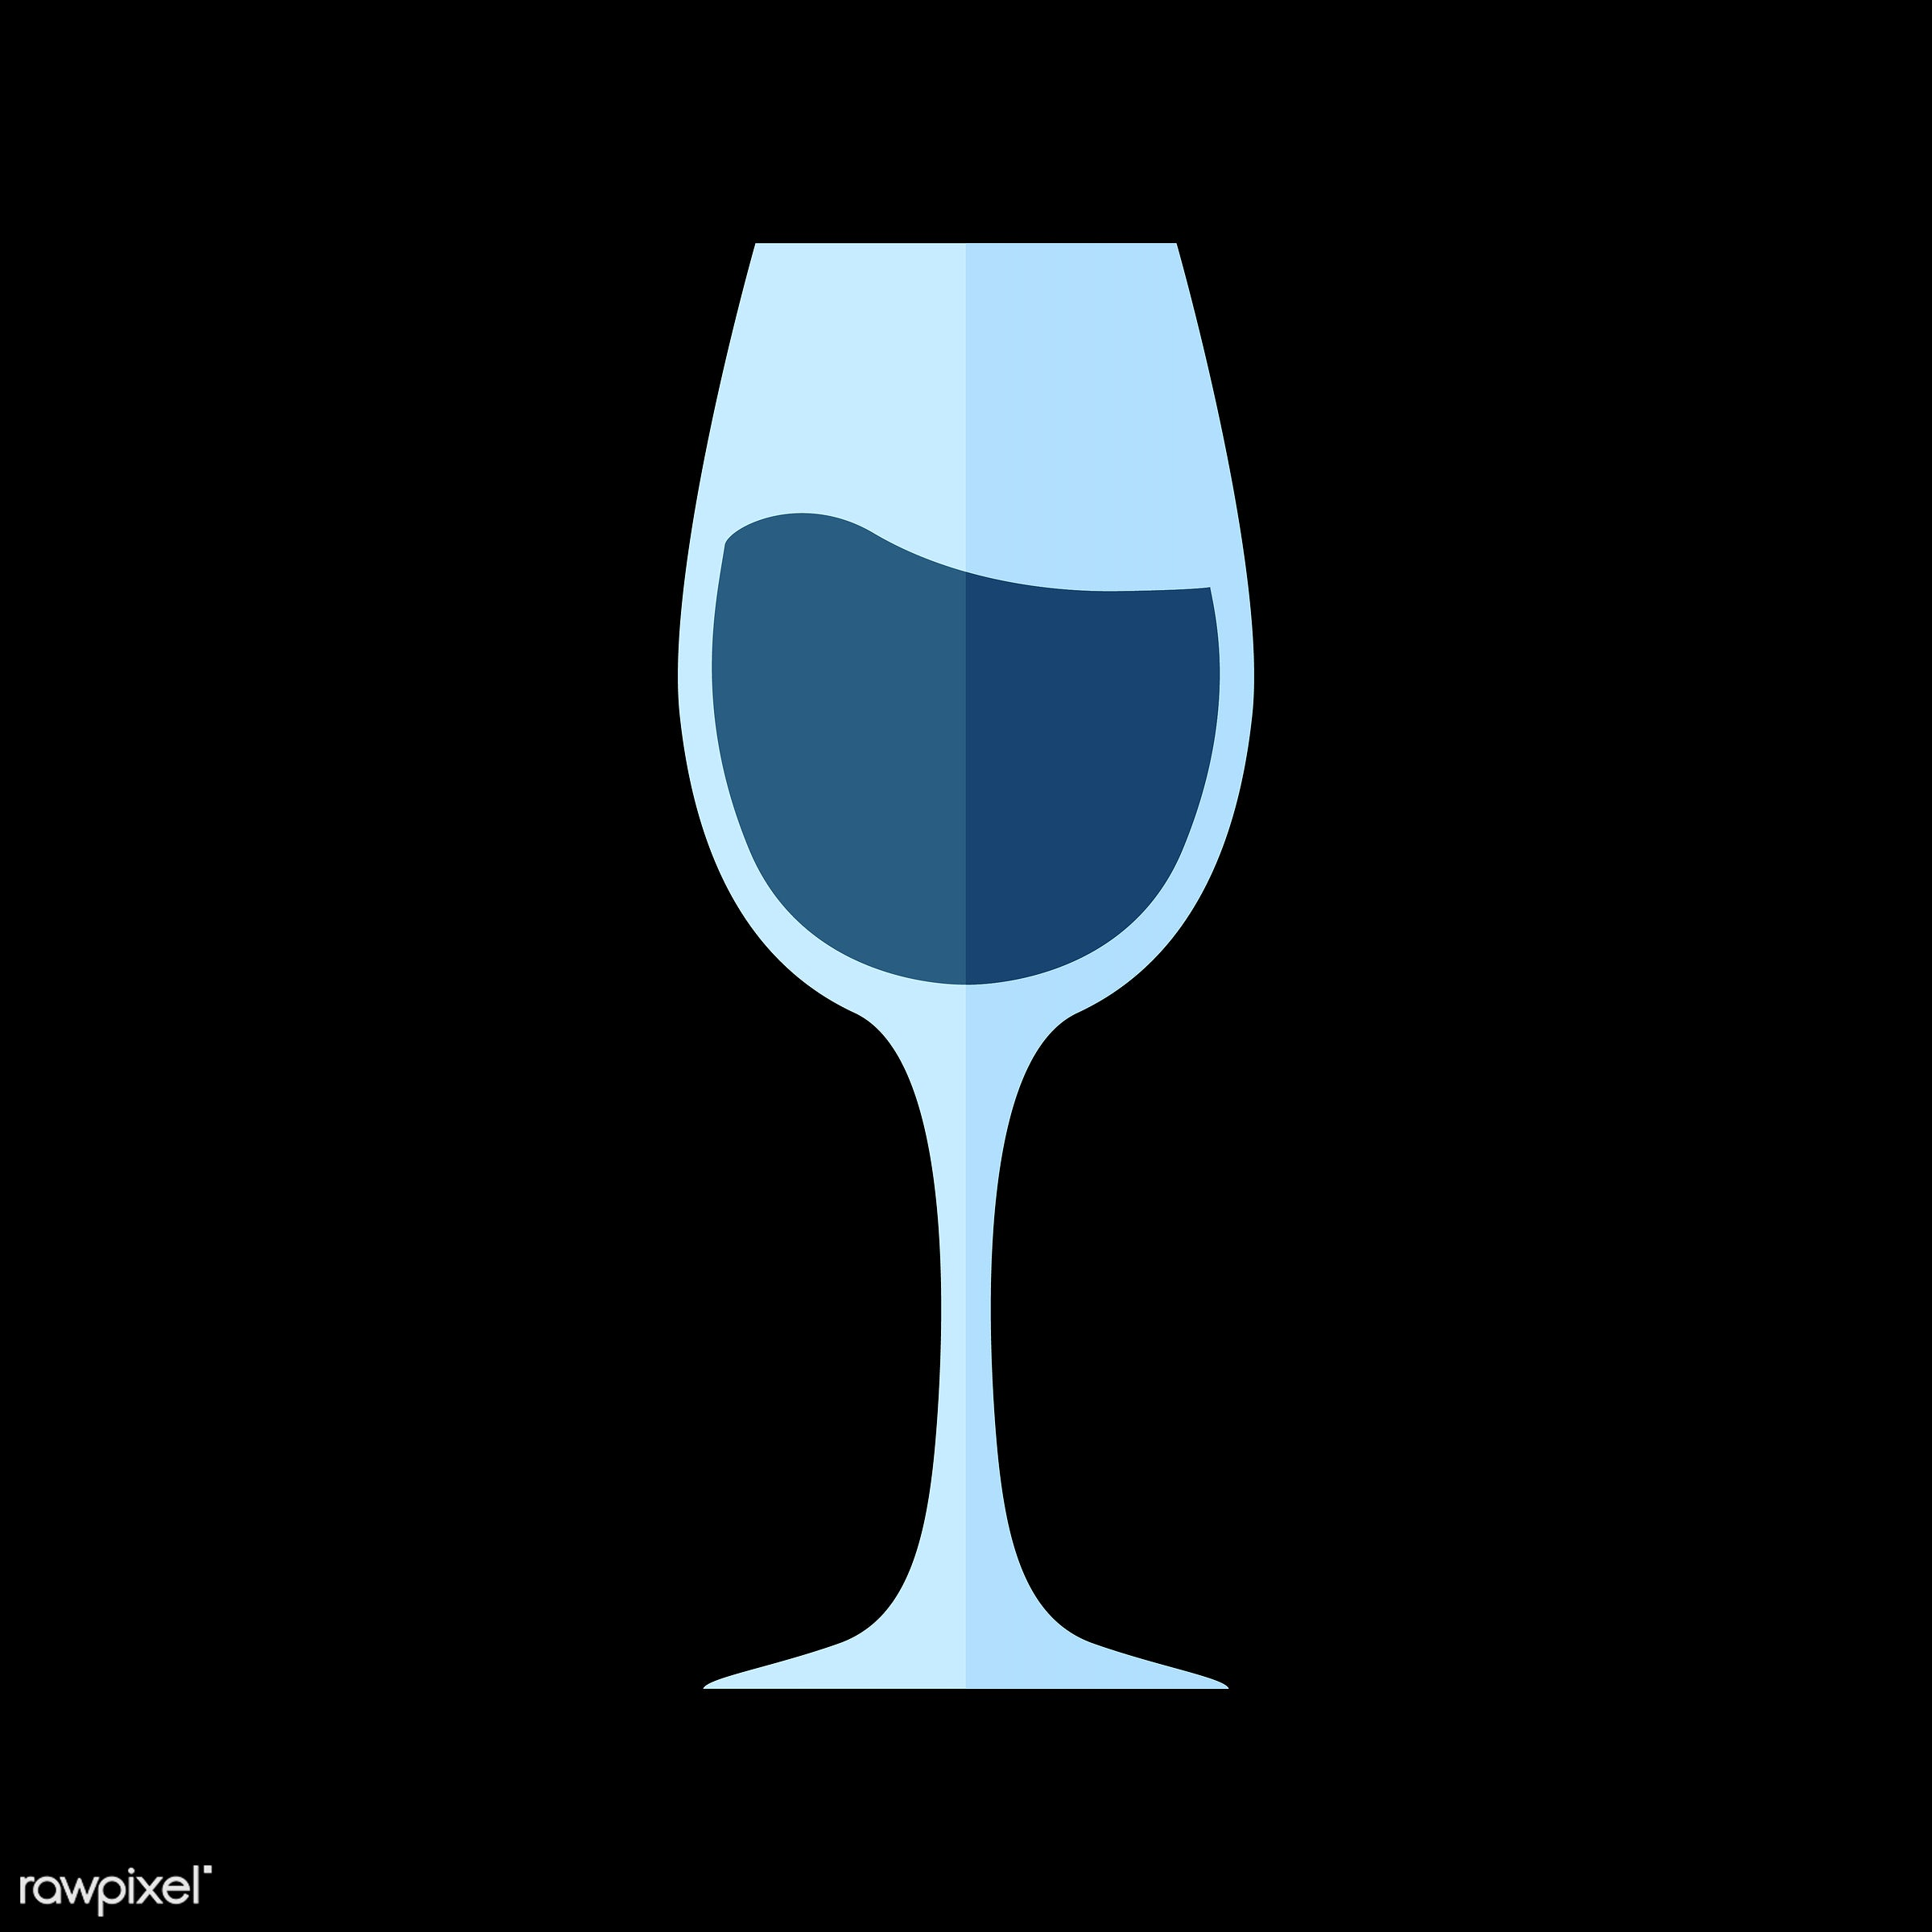 vector, graphic, illustration, icon, symbol, colorful, cute, drink, beverage, water, blue, wine, red wine, wine glass